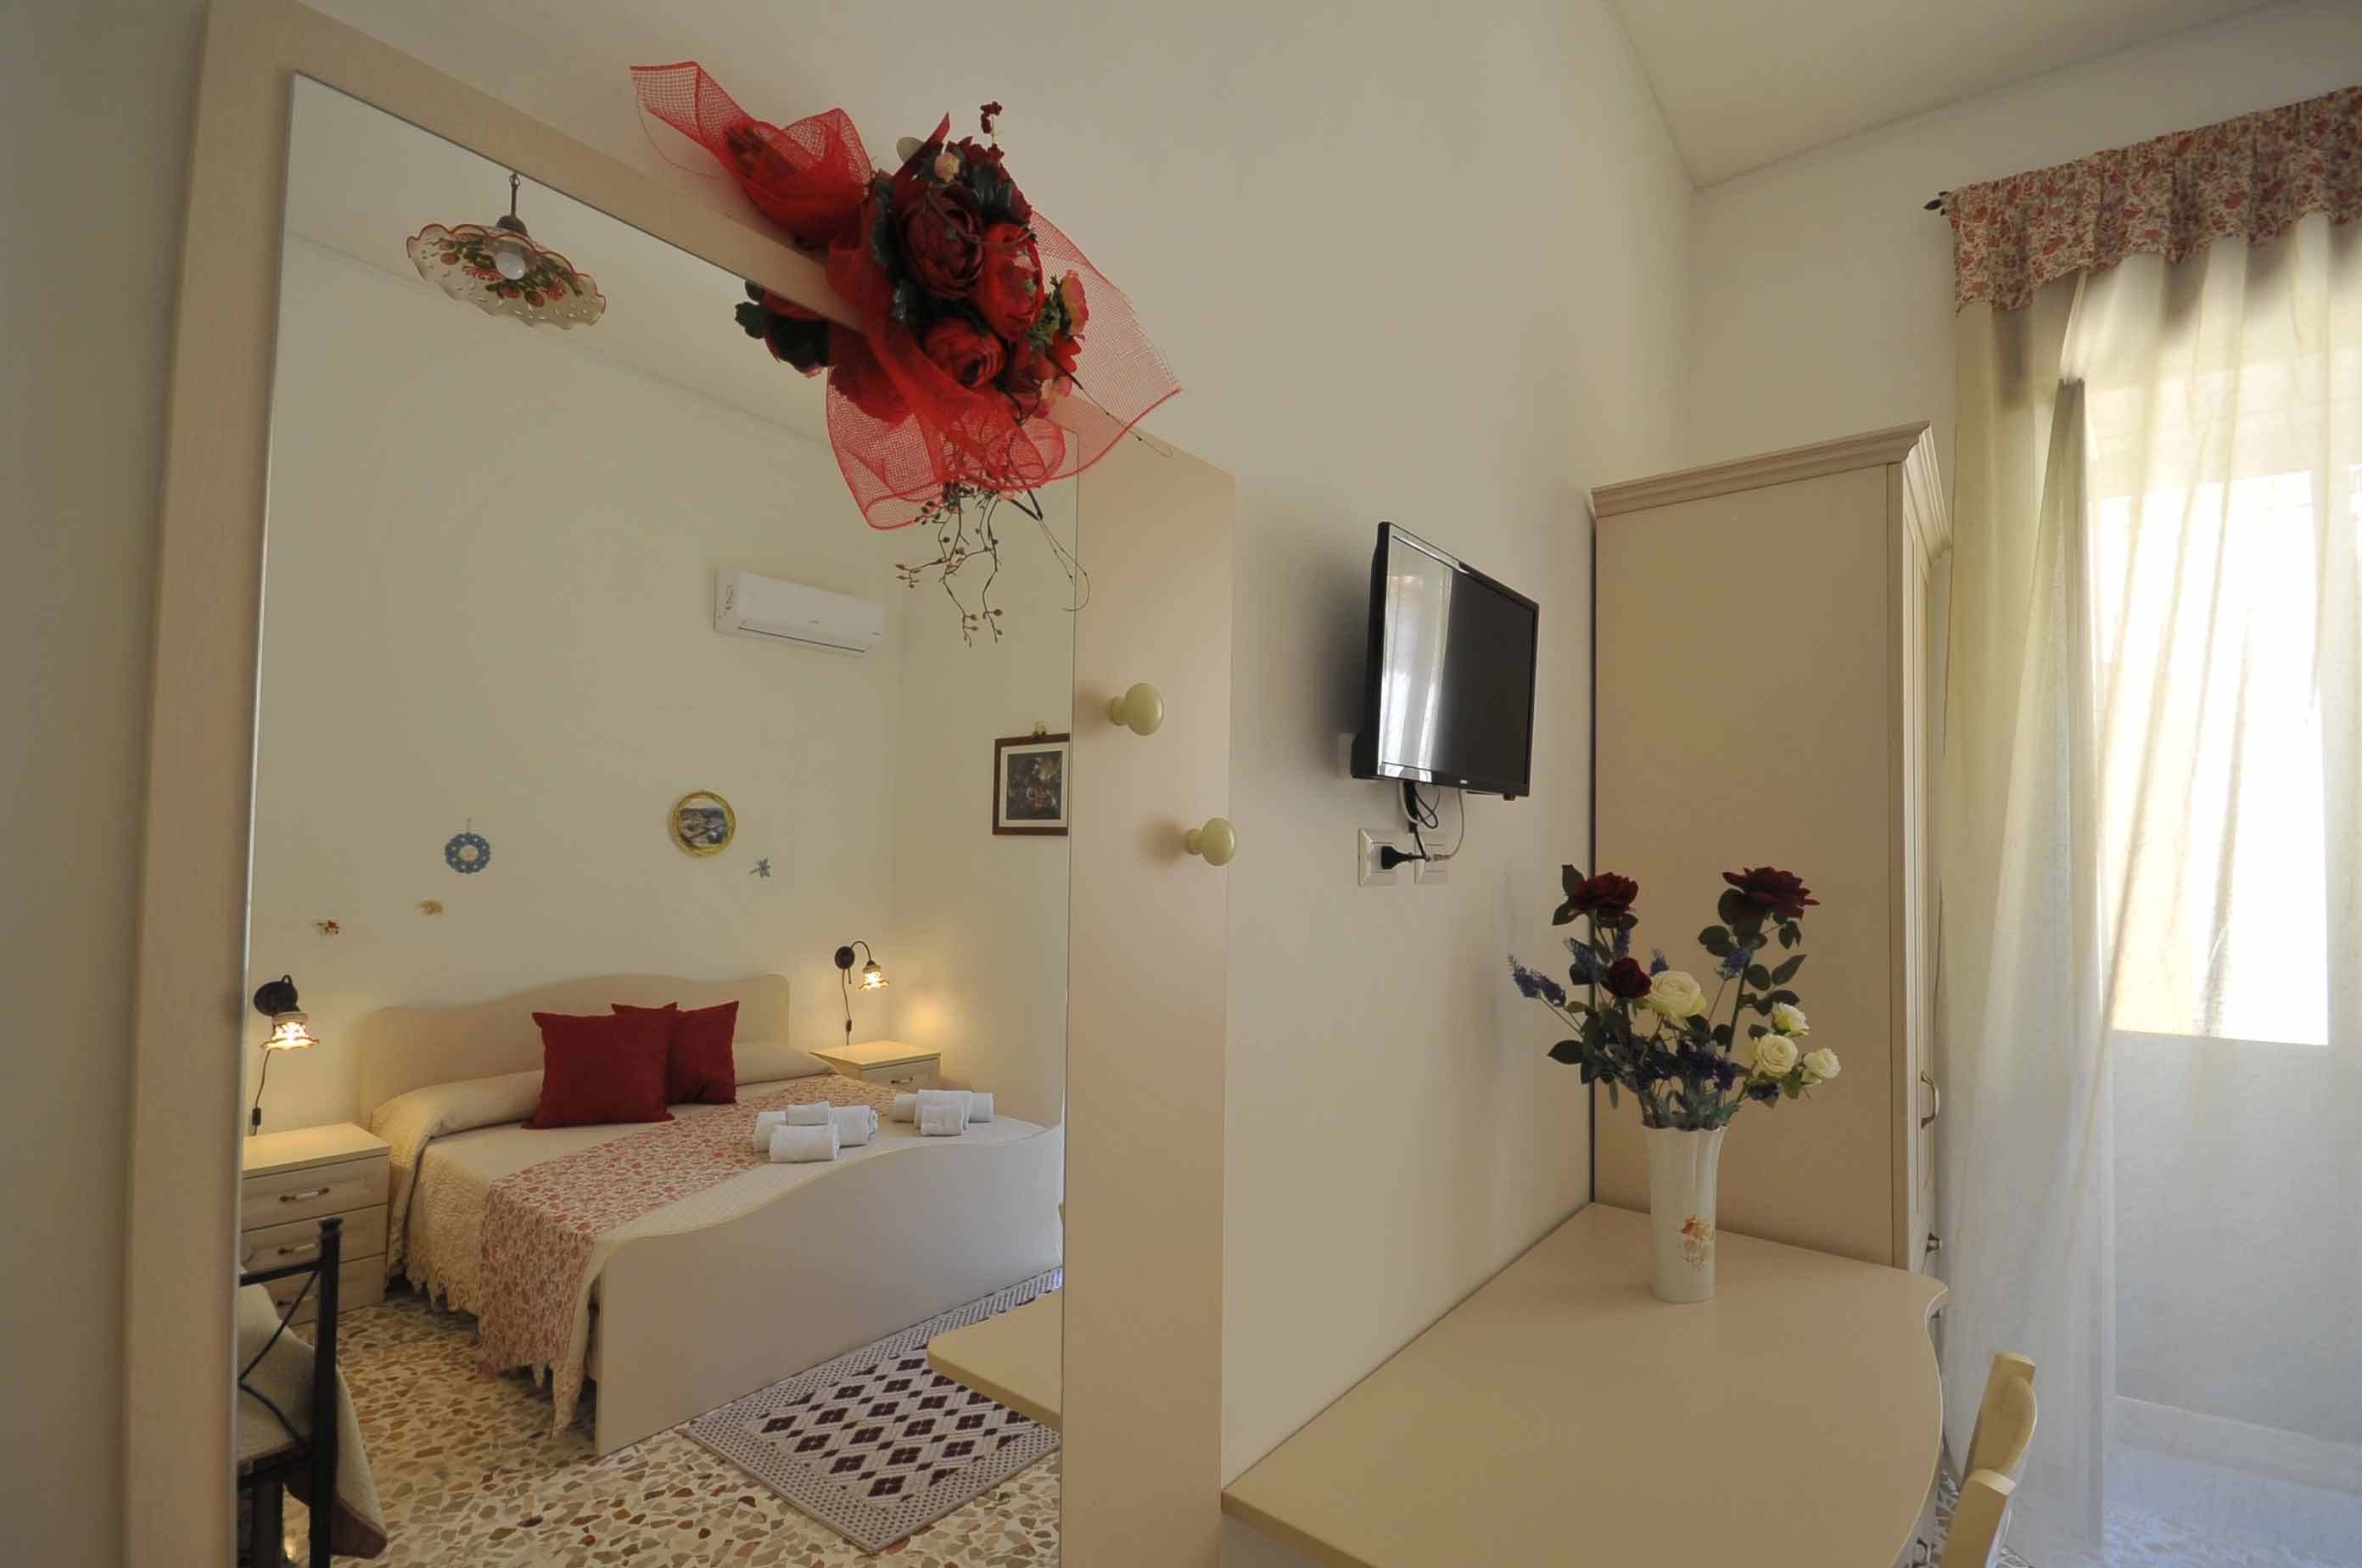 Afrodite_tripla_B&B_Avola_siracusa_bed_and_breakfast_3